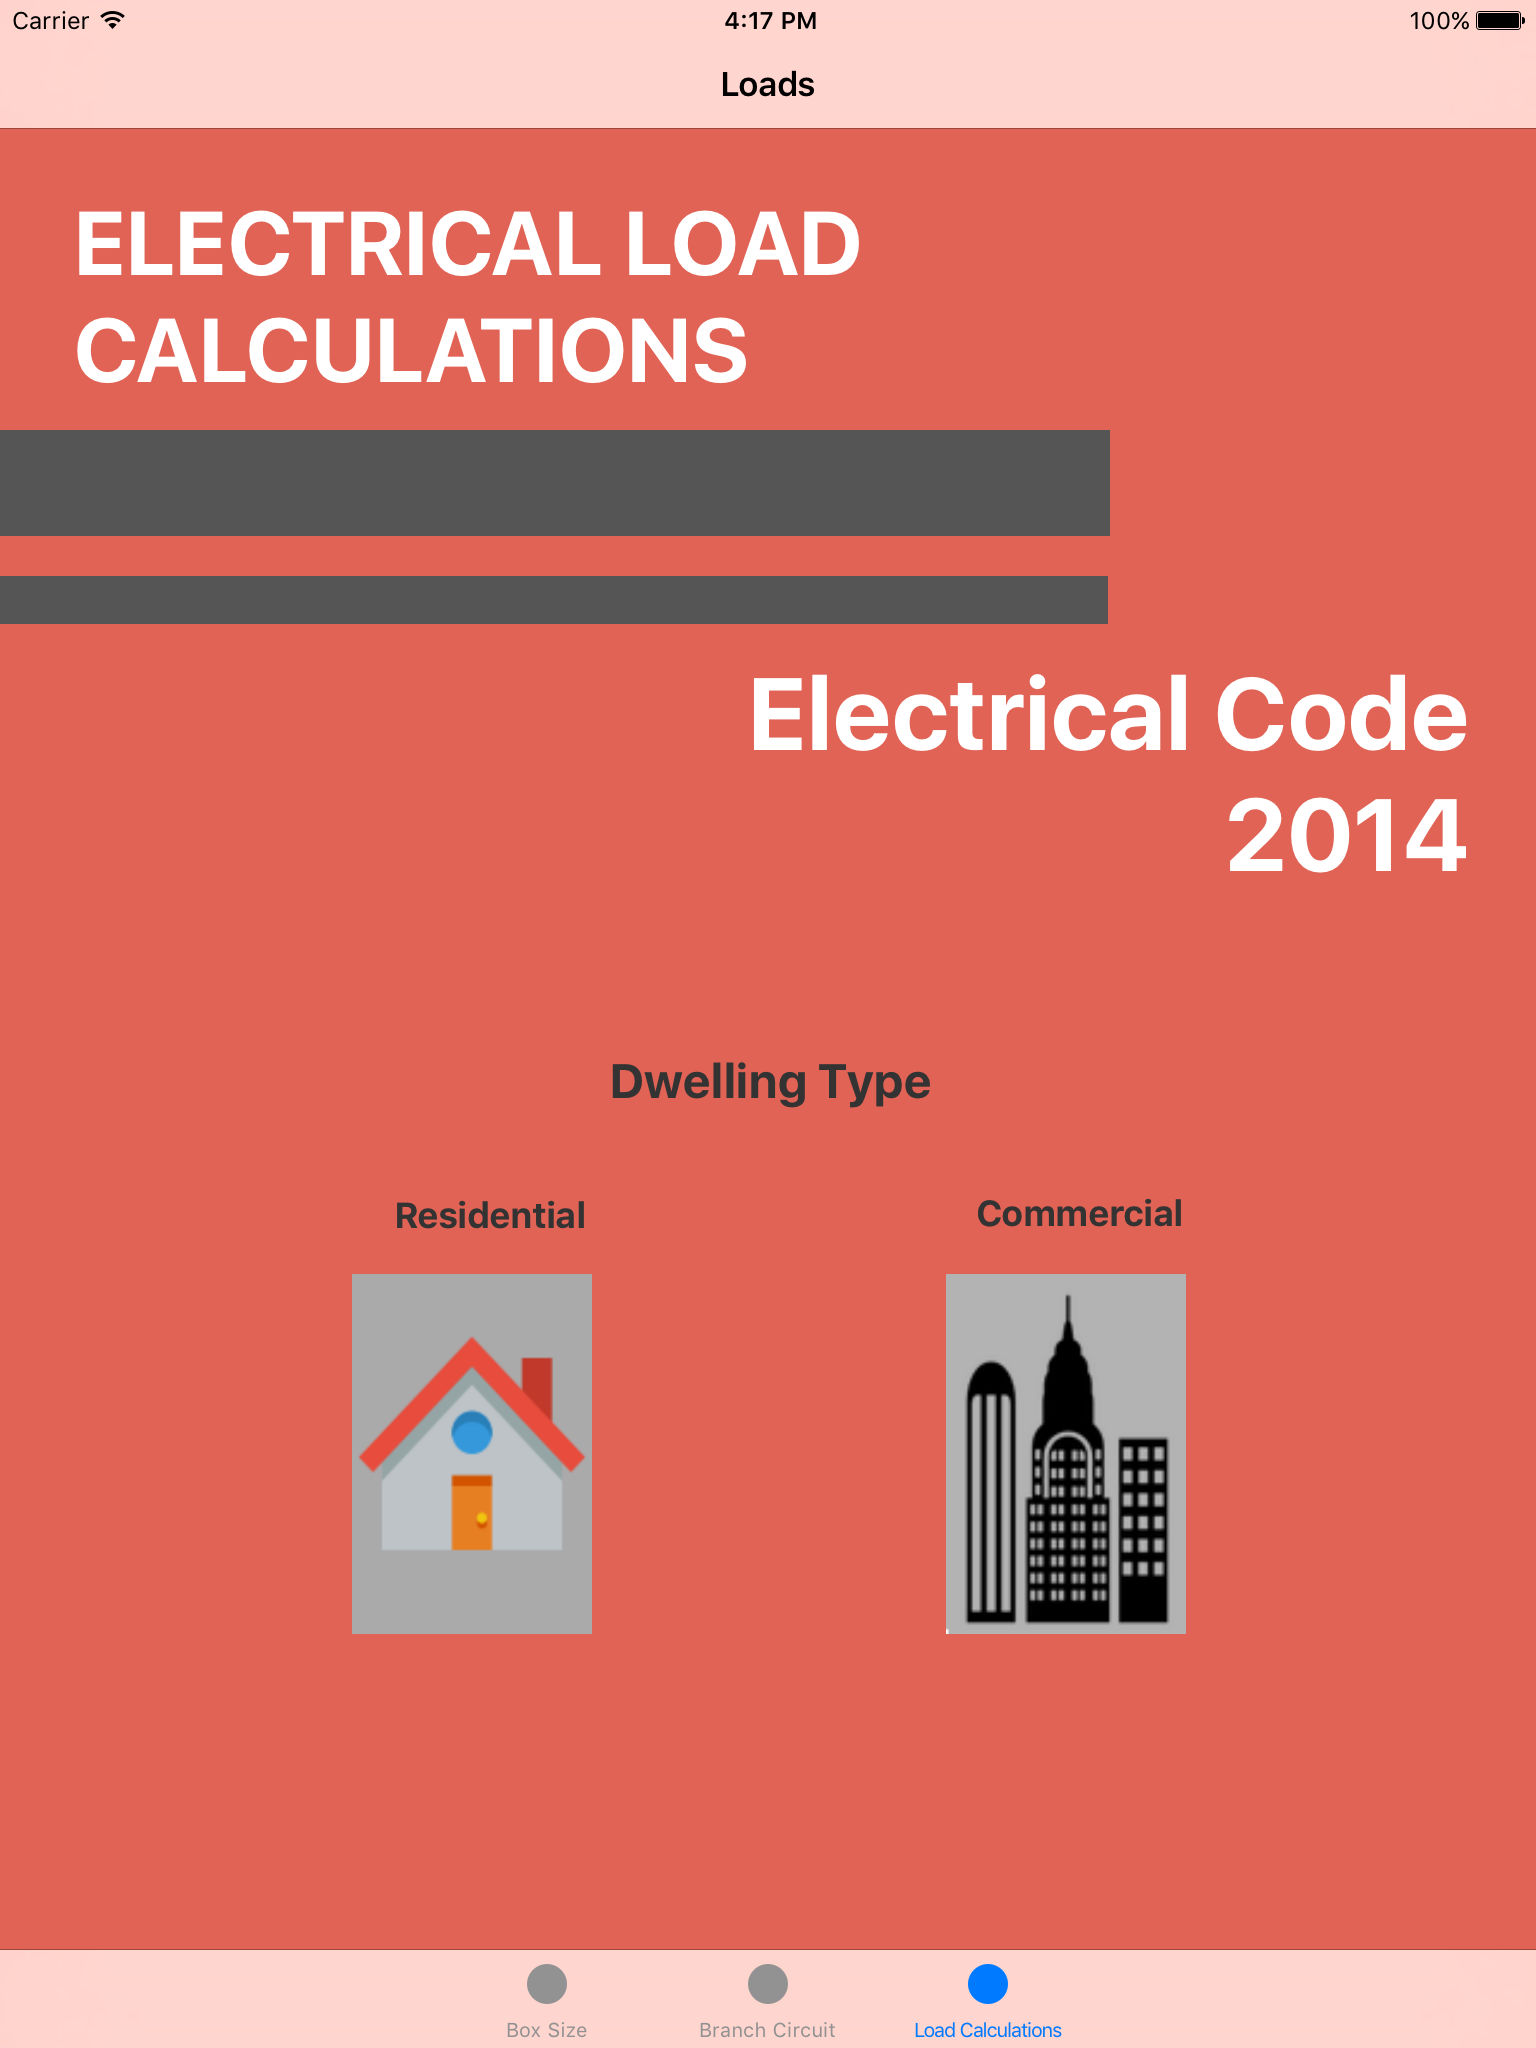 Electrical Construction Calculations Tool Kit App Ranking and Store